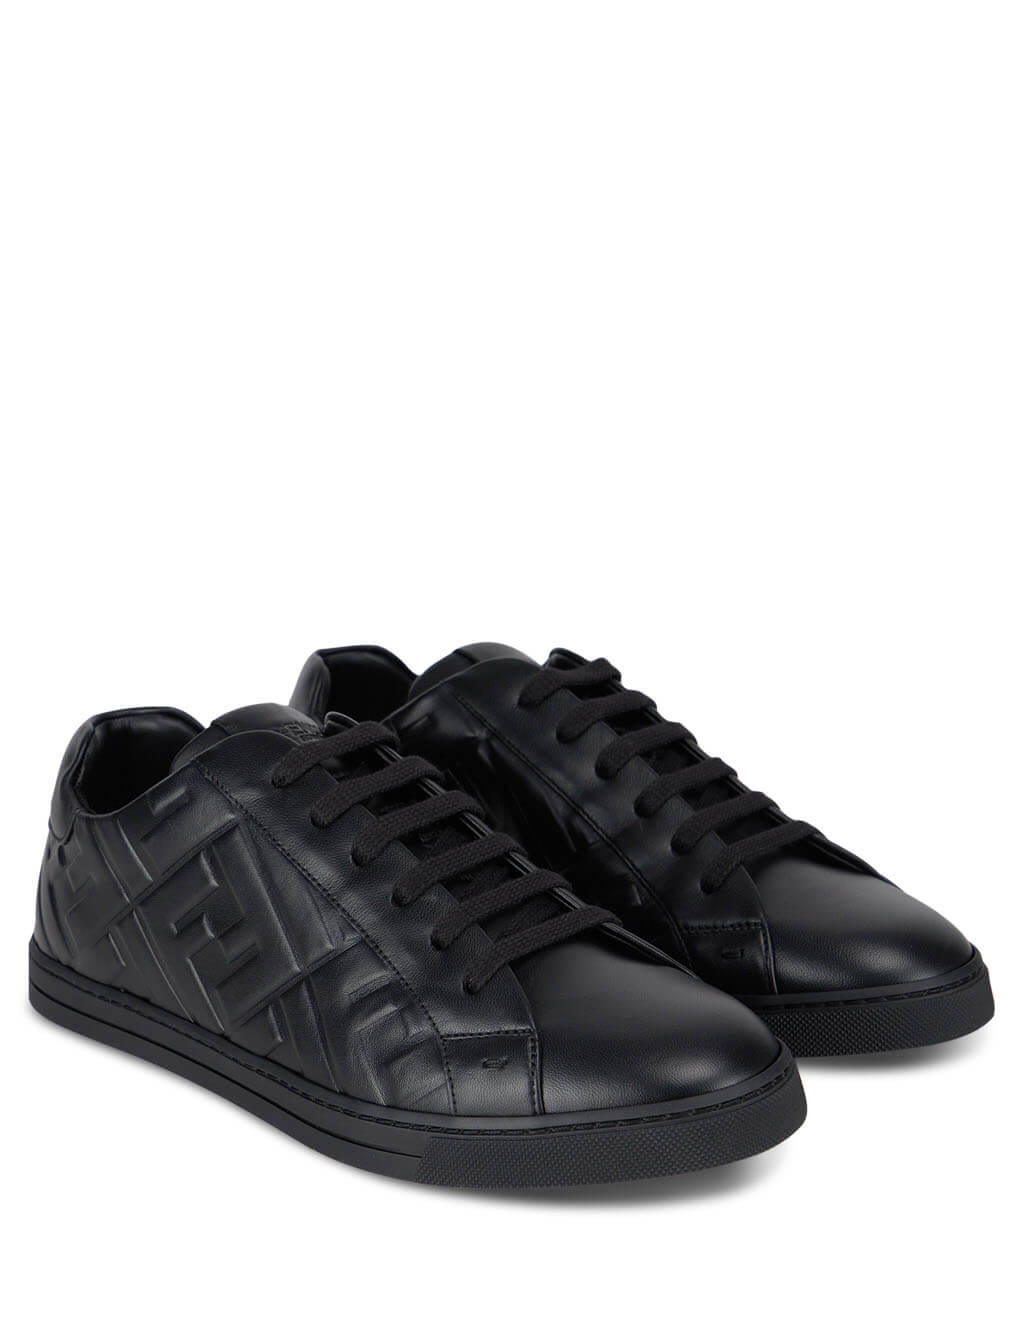 Men's FENDI Nappa Sneakers in Black. 7E1374ABNSF0ABB